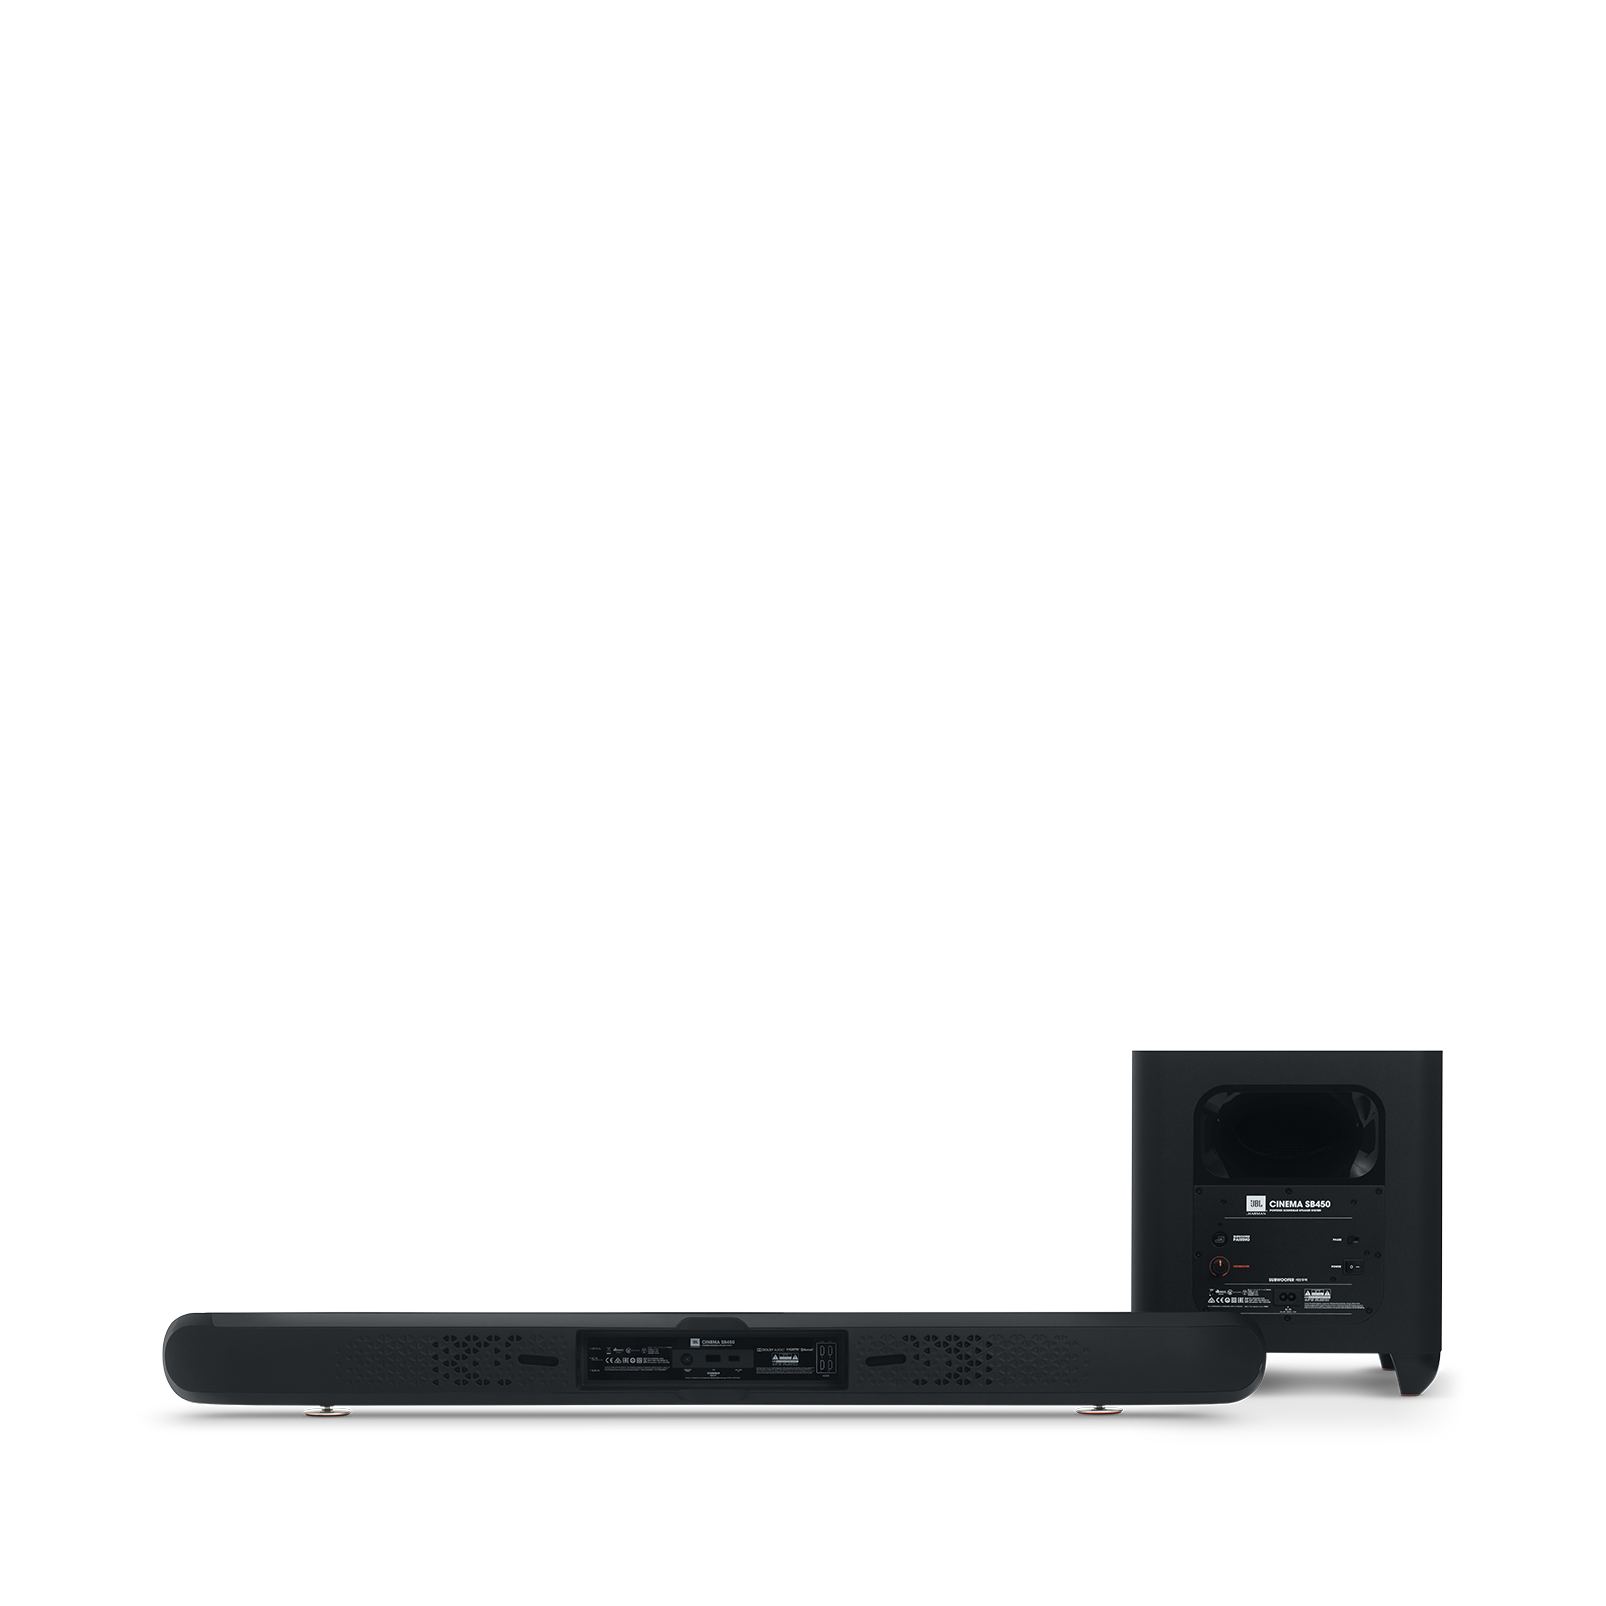 Cinema SB 450 - Black - 4K Ultra-HD soundbar with wireless subwoofer. - Back